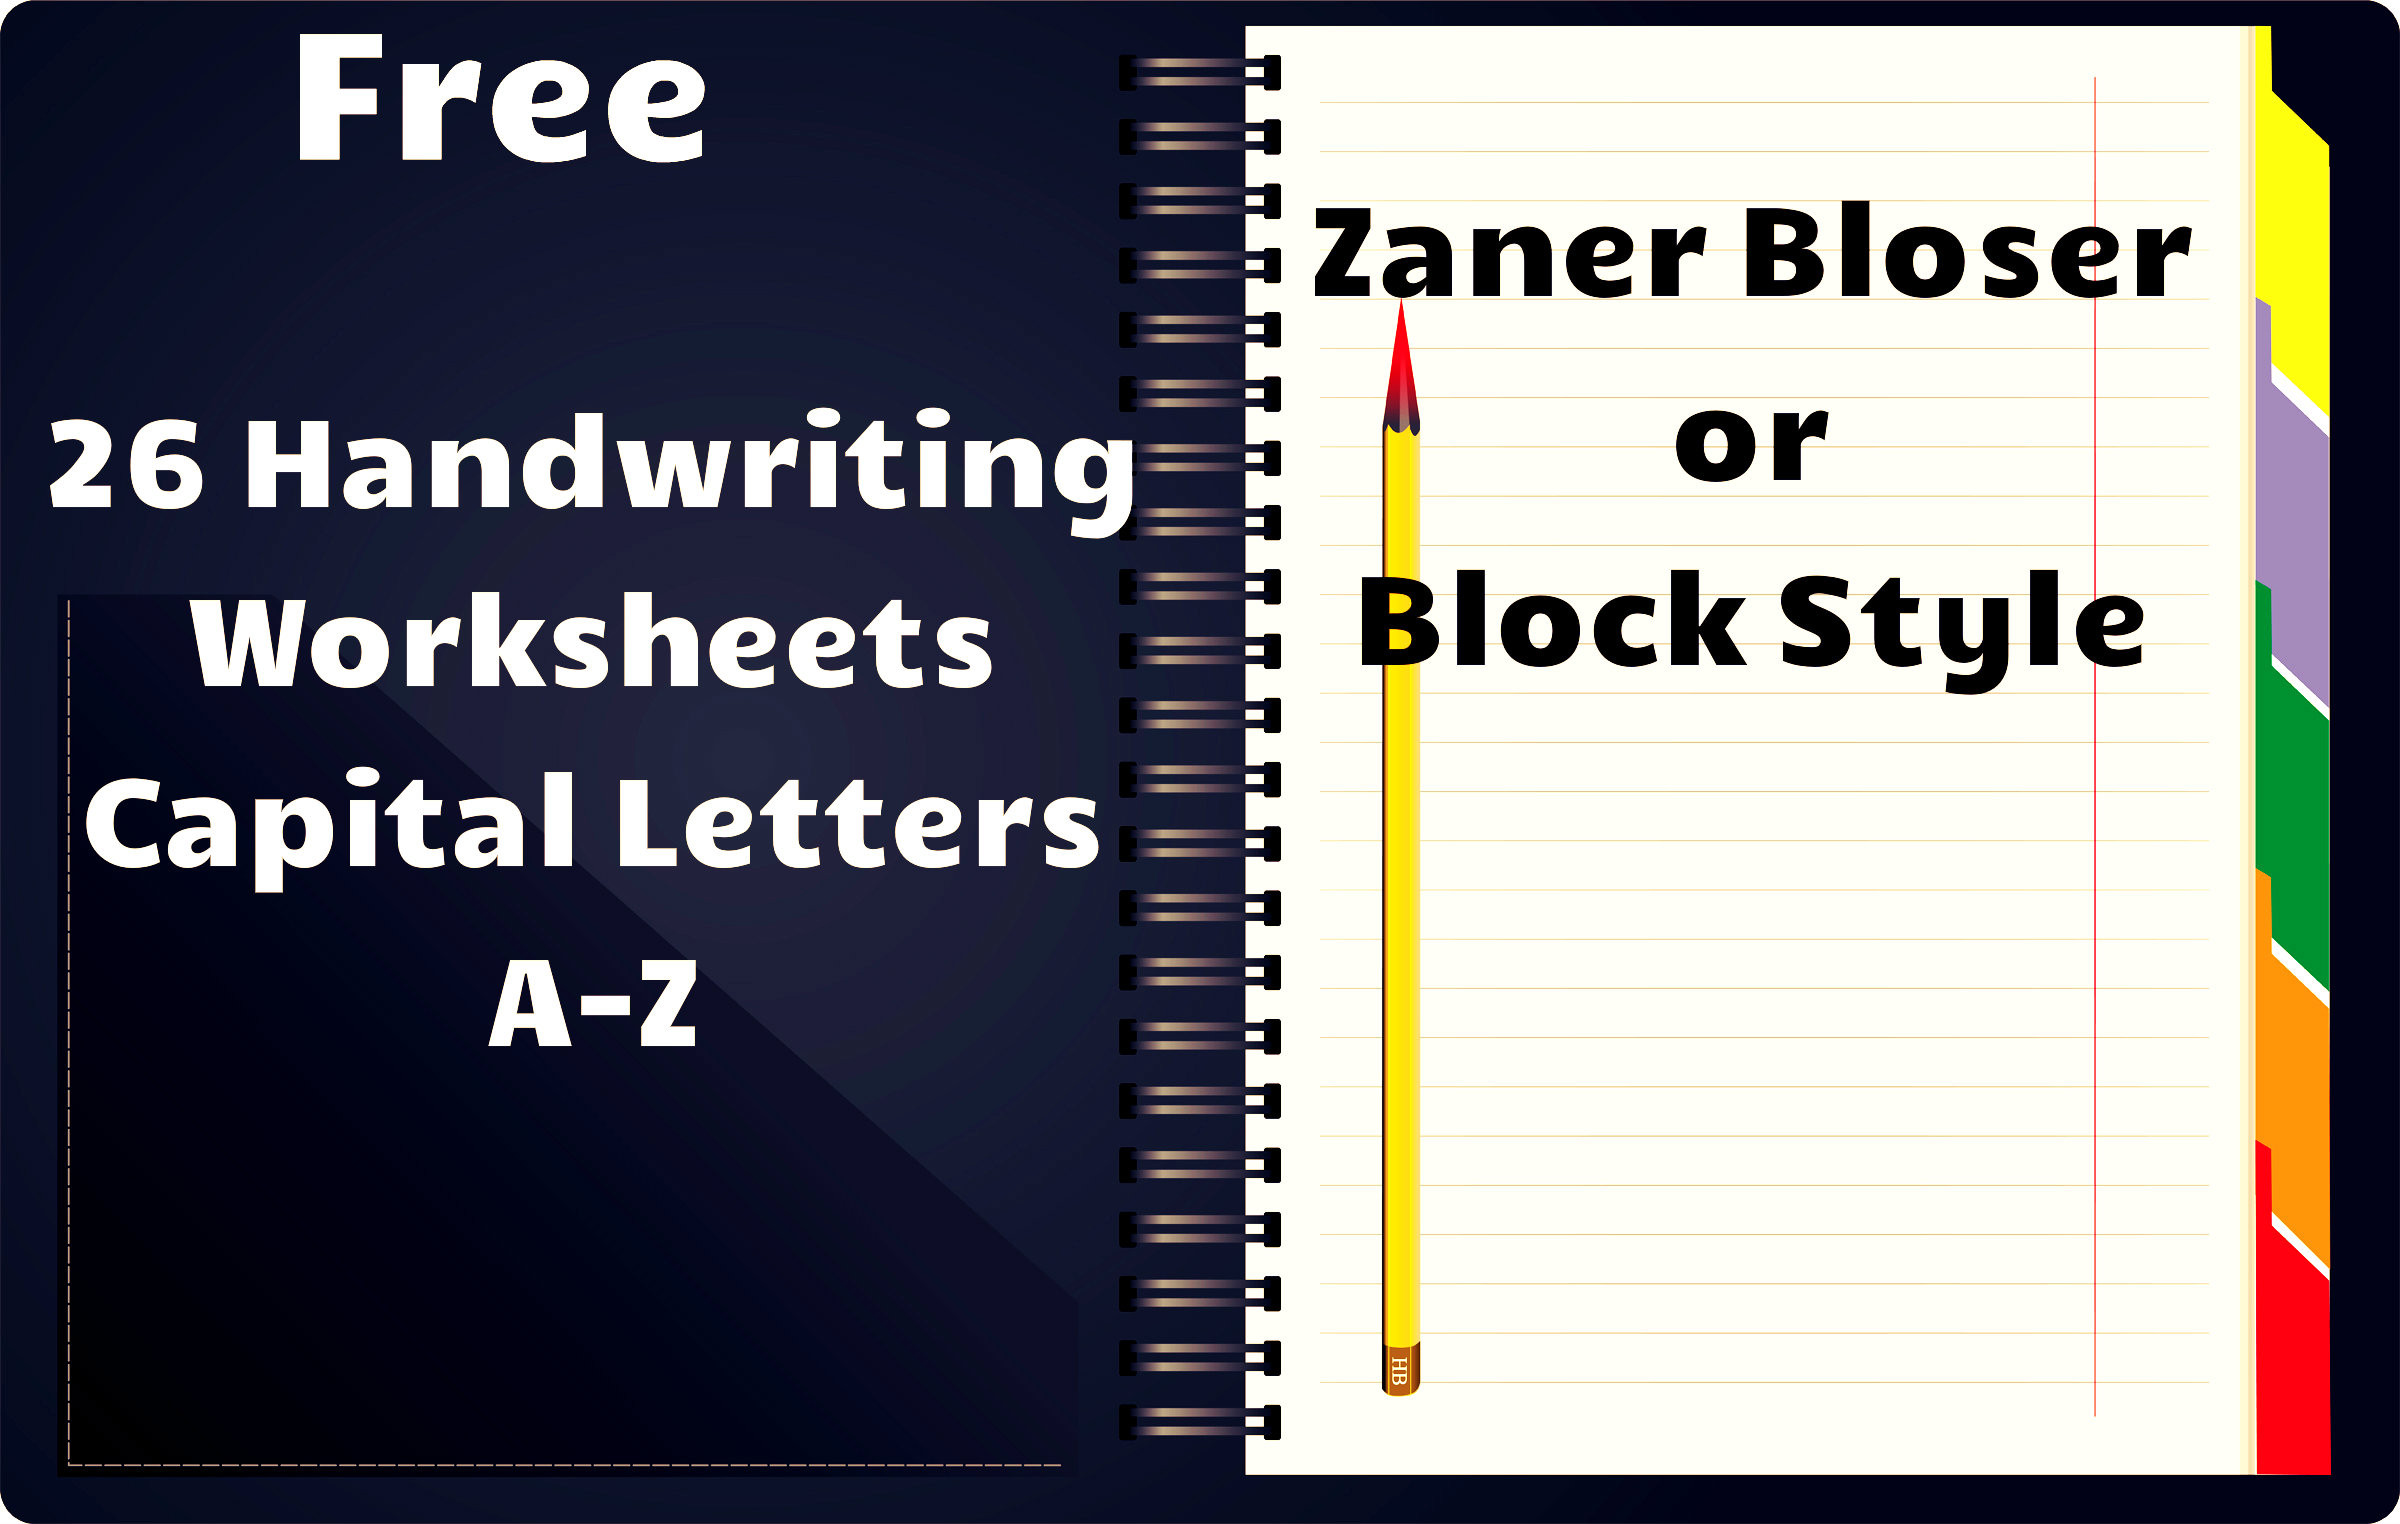 Zane Bloser Handwriting Worksheets Free Handwriting Worksheets A Z